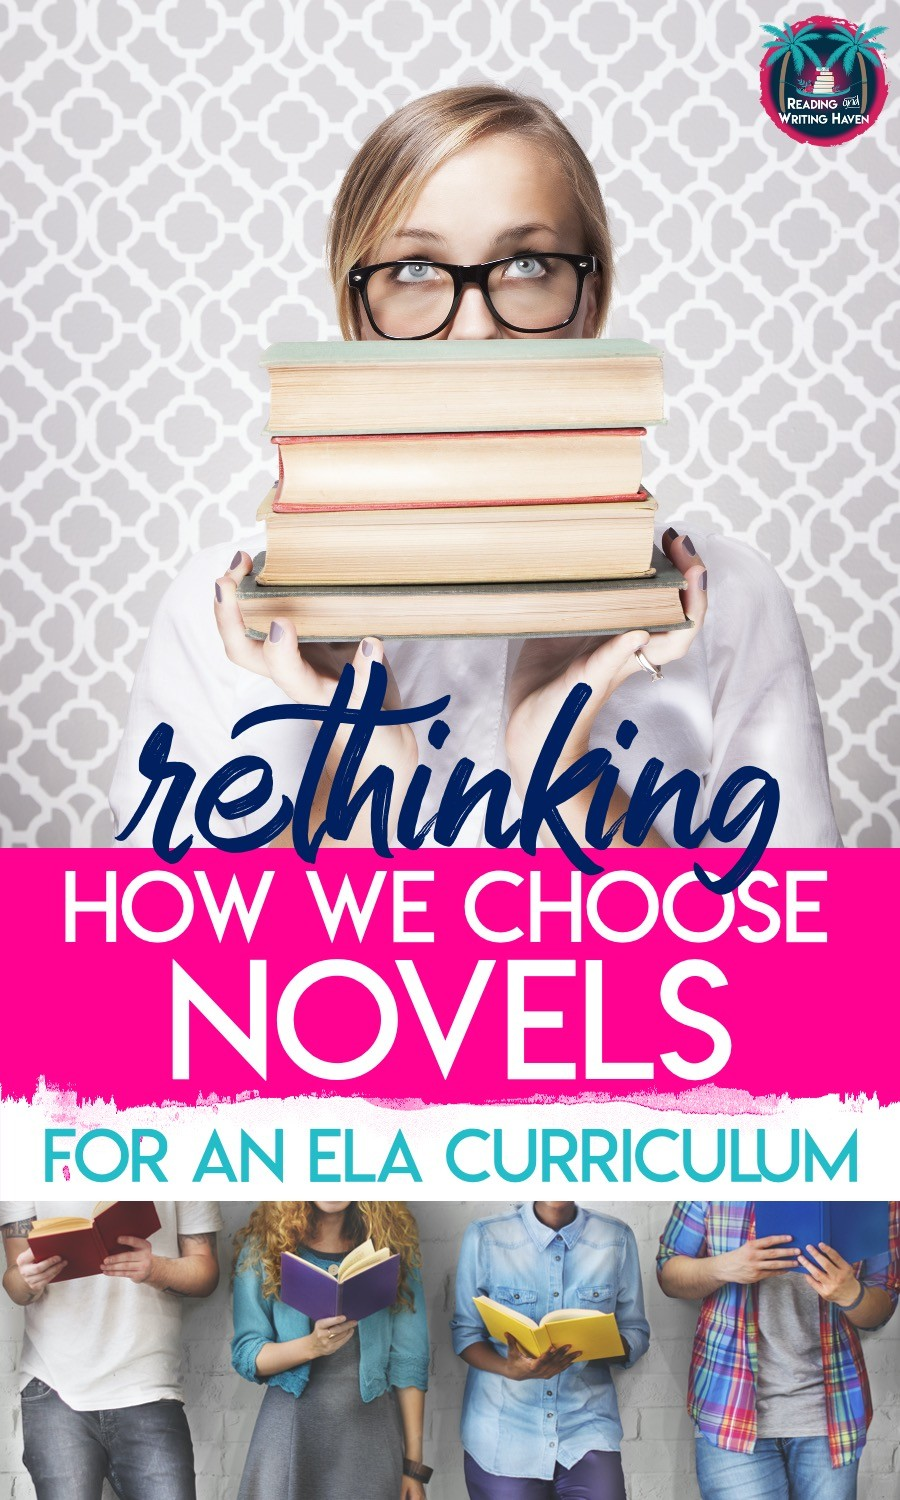 3 essential questions to consider when choosing novels for an ELA curriculum #ELACurriculum #ELANovels #MiddleSchoolELA #HighSchoolELA